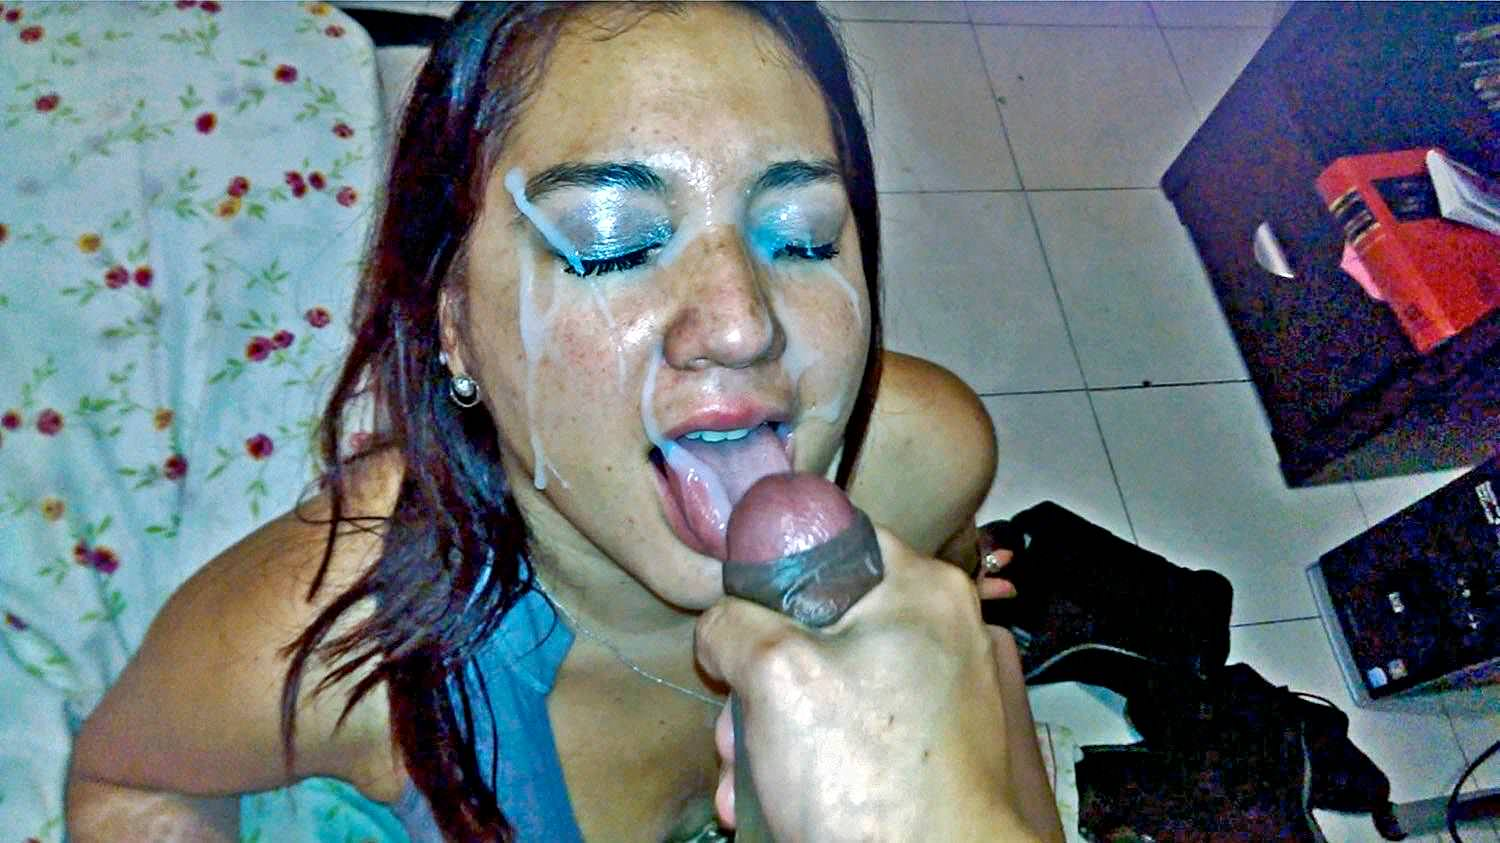 Asshole filled with load of sperm free porn